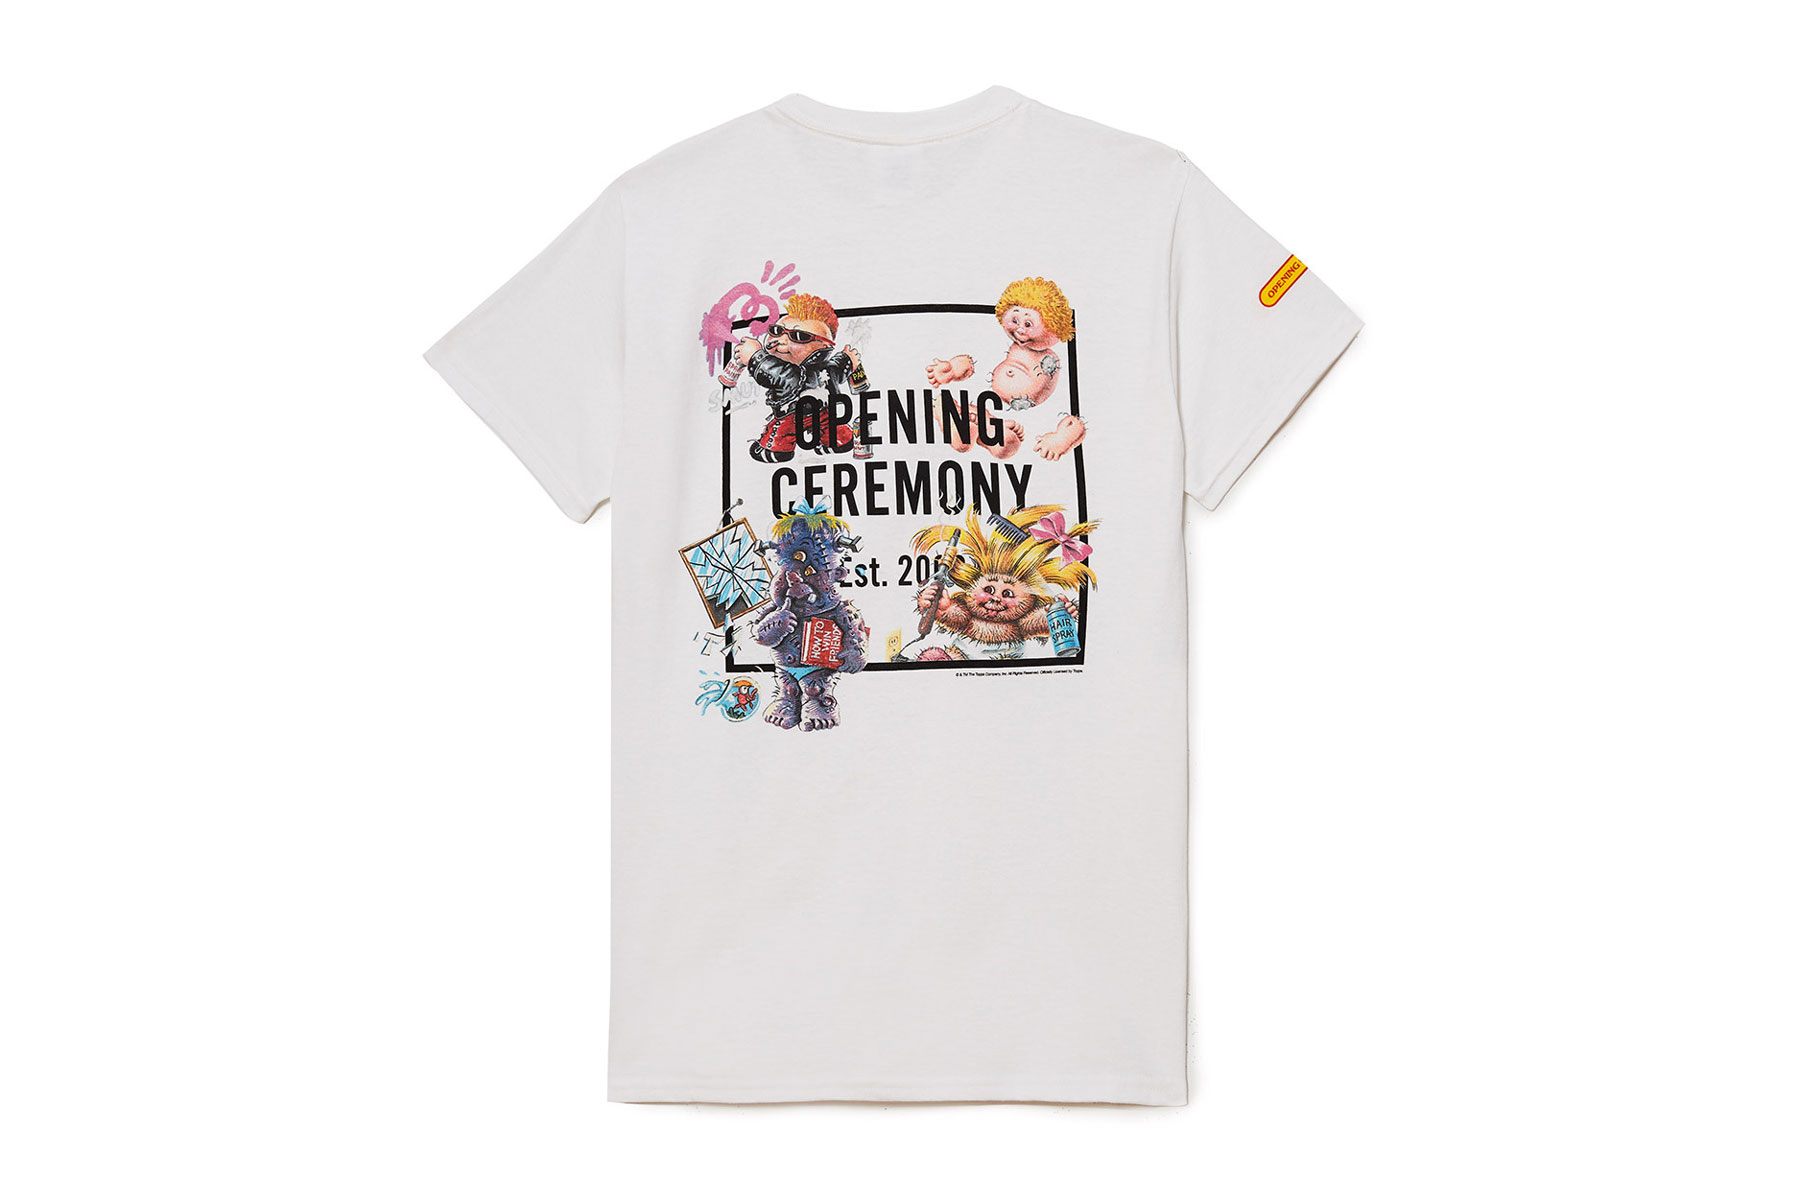 Garbage Pail Kids x Opening Ceremony Collaboration